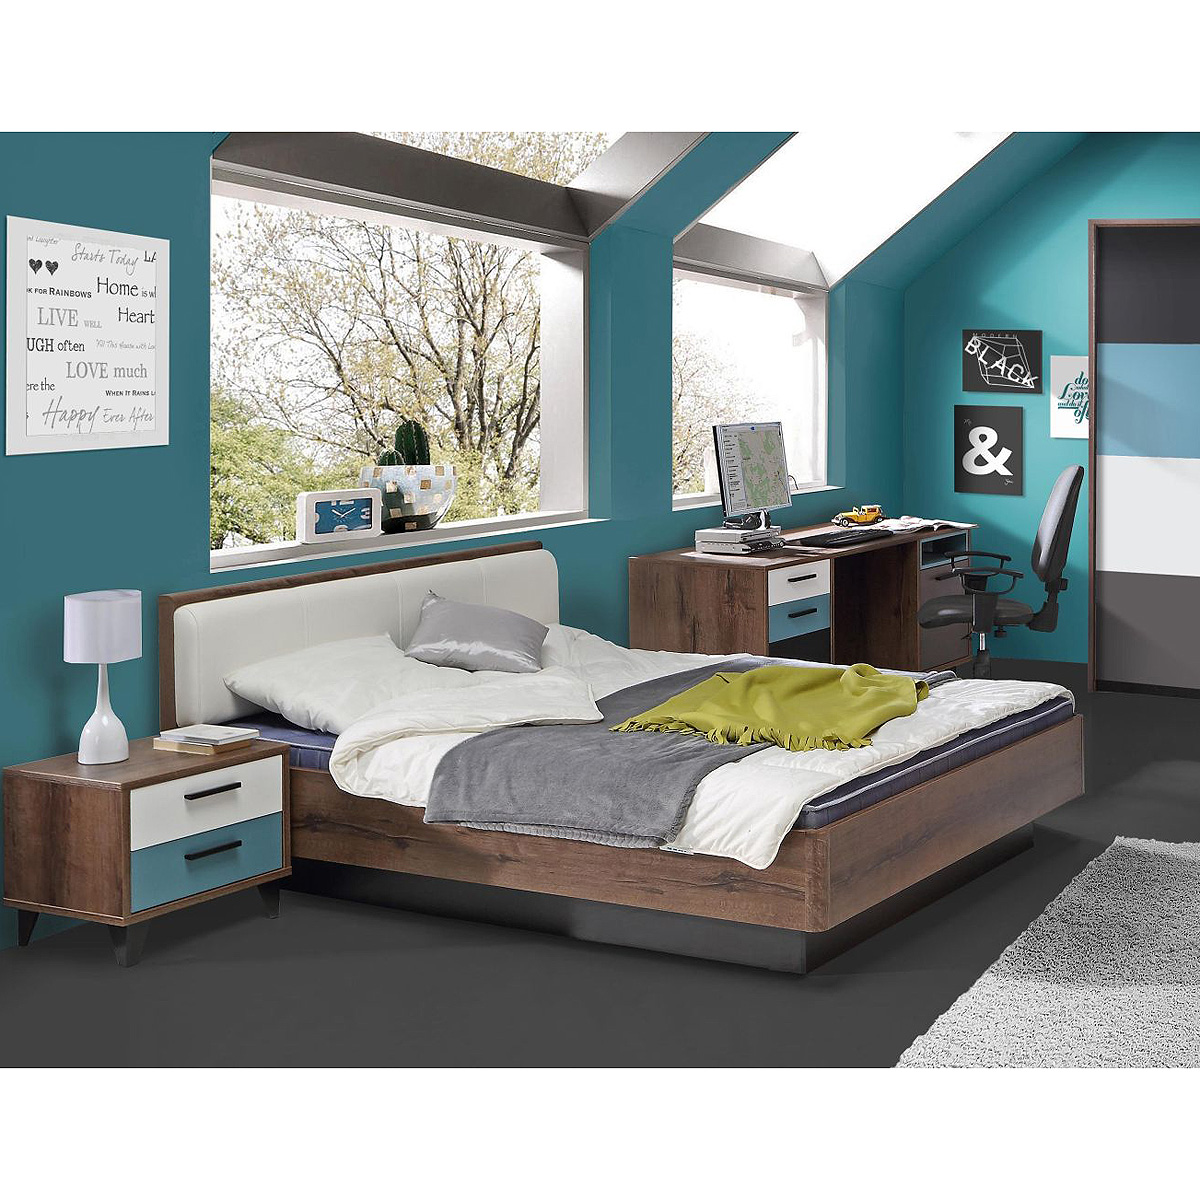 bett raven jugendzimmerbett doppelbett in schlammeiche und wei 140x200 eur 289 95 picclick de. Black Bedroom Furniture Sets. Home Design Ideas